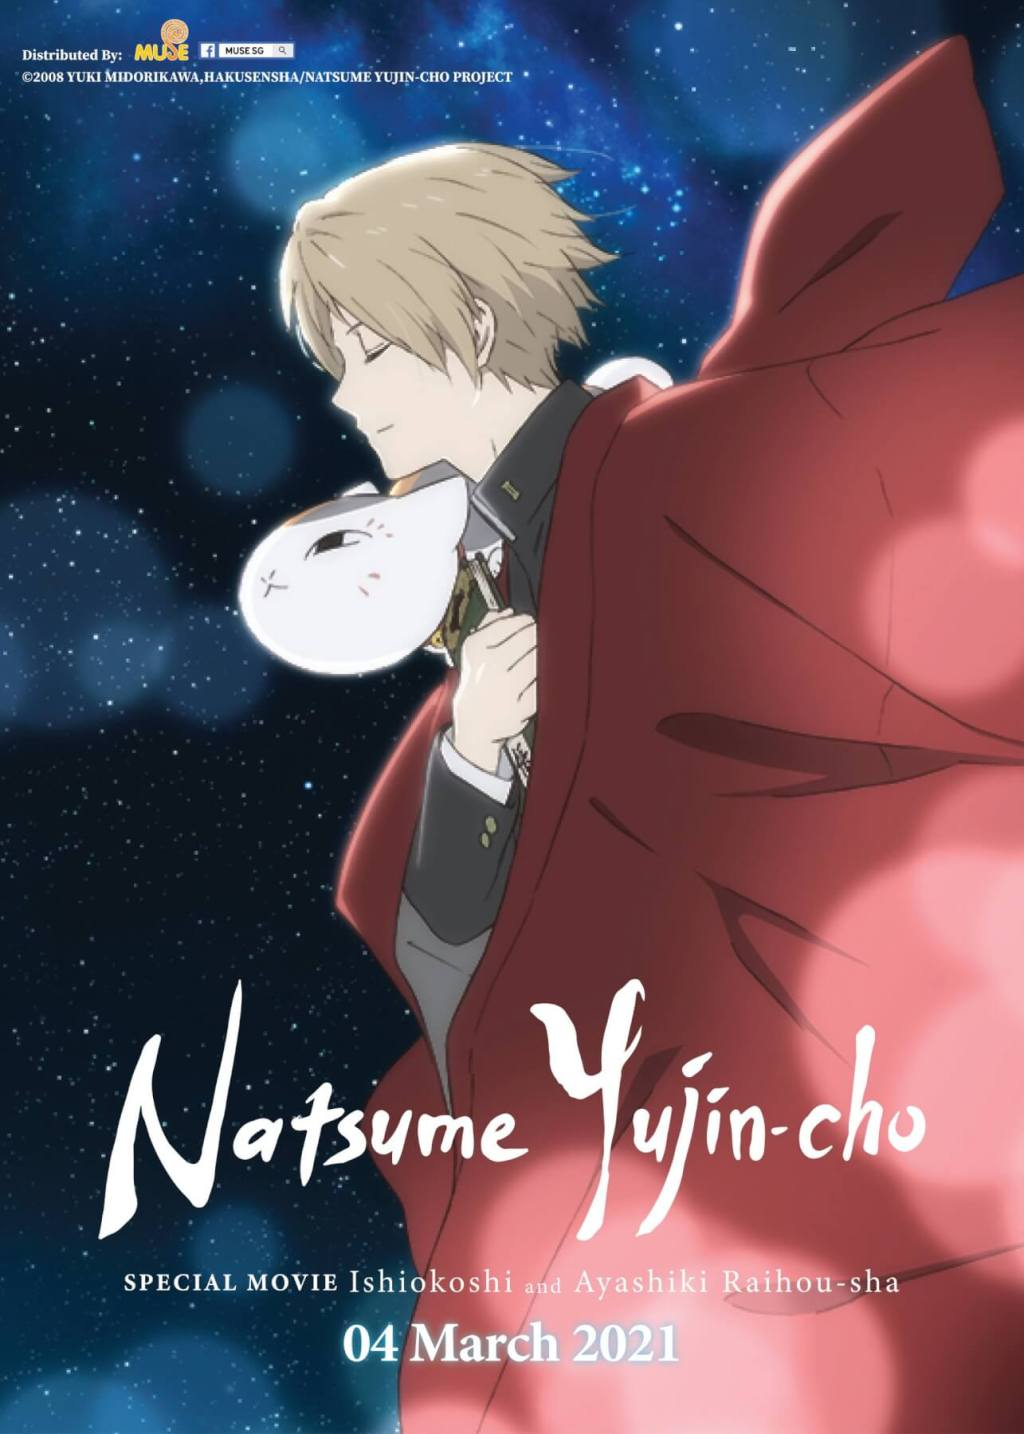 """Natsume Yuujincho"" Film SG Fan Screening Slated for 27th Feb! General Release on 4th March!"